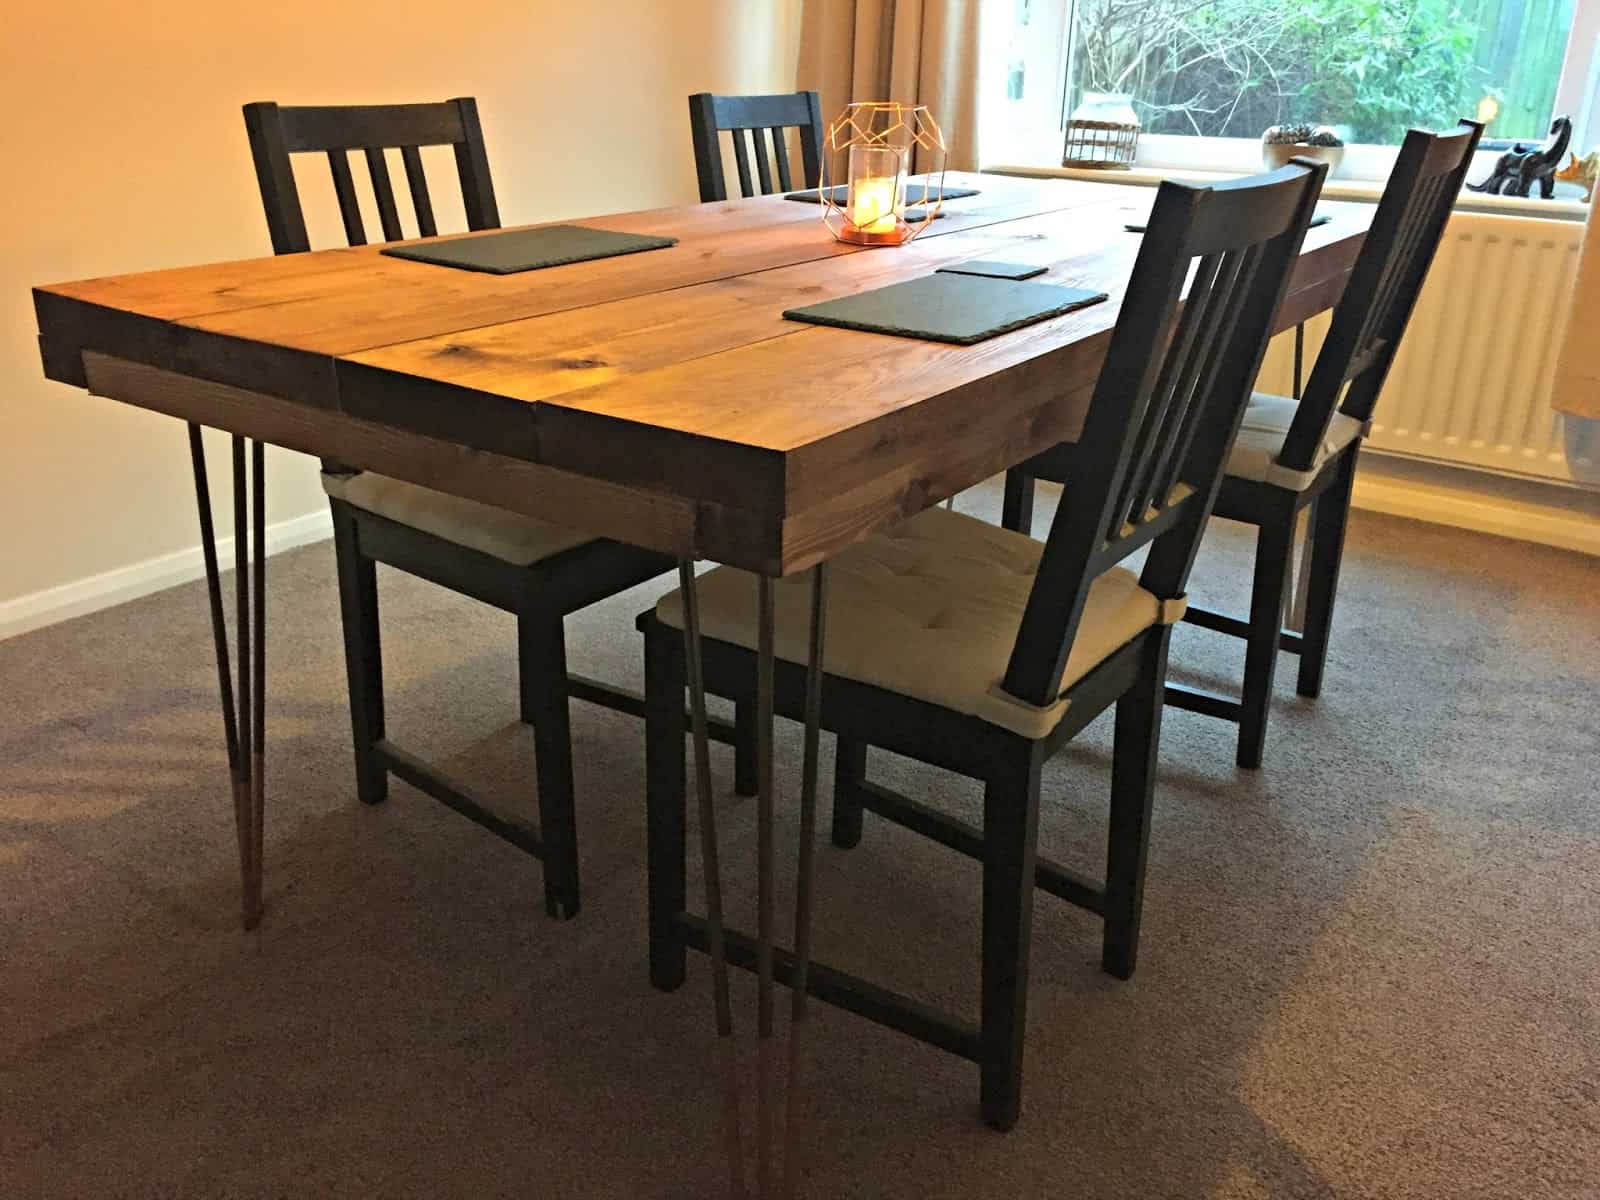 diy kitchen tables white round table and chairs eat in more often thanks to our dining ideas